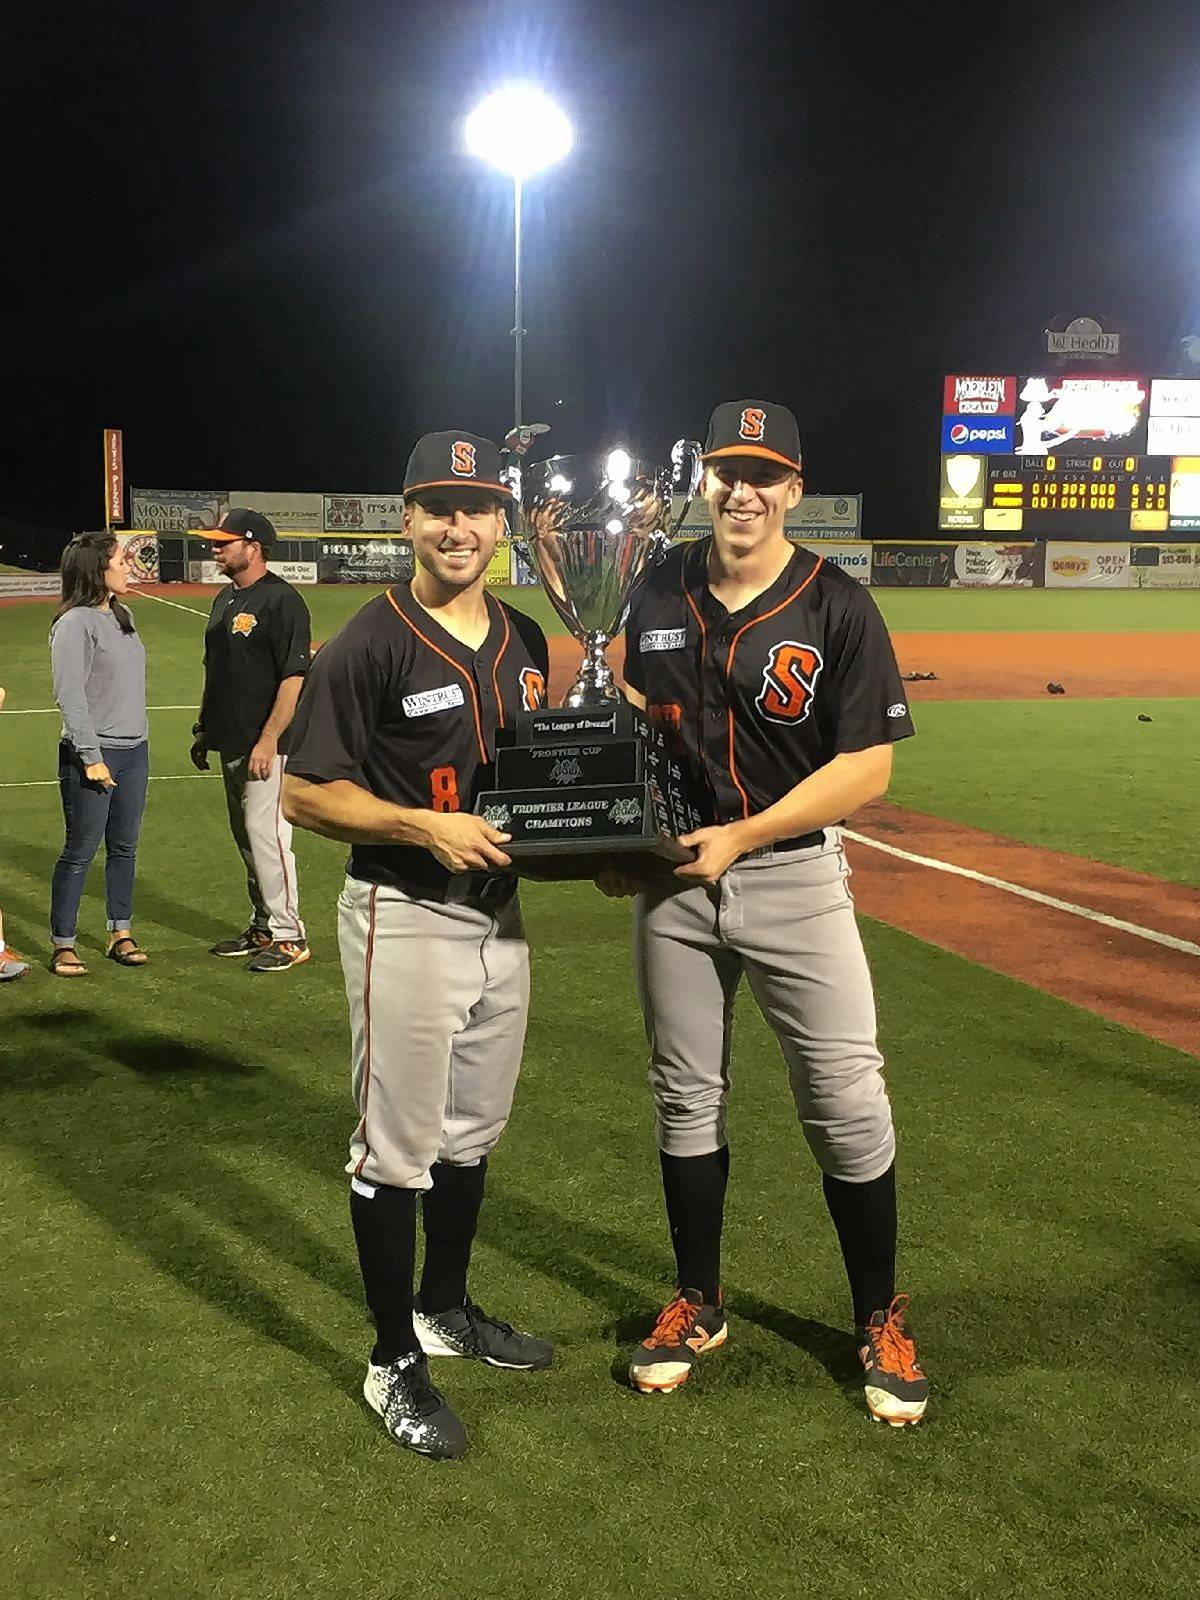 Rob McDonnell, right, is joined by Schaumburg Boomers teammate Kyle Ruchim after they helped produce a Frontier League championship this summer. McDonnell, a Barrington grad, had a strong season out of the bullpen and hopes affiliated baseball gives him another look.